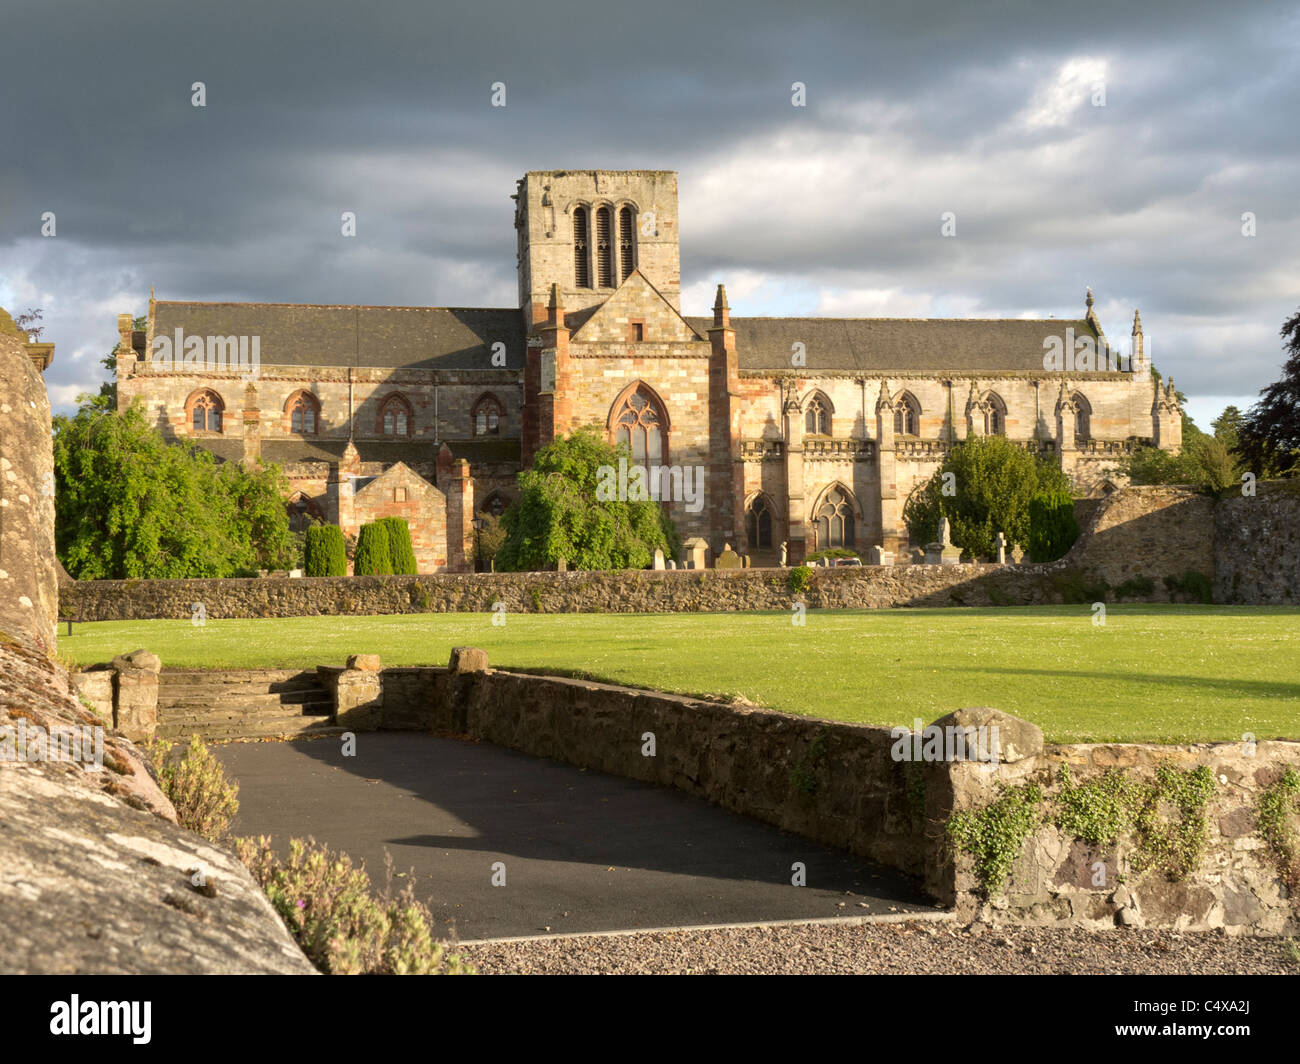 St Mary's Collegiate Church in the historic town of Haddington, East Lothian, Scotland  River Tyne dusk light - Stock Image